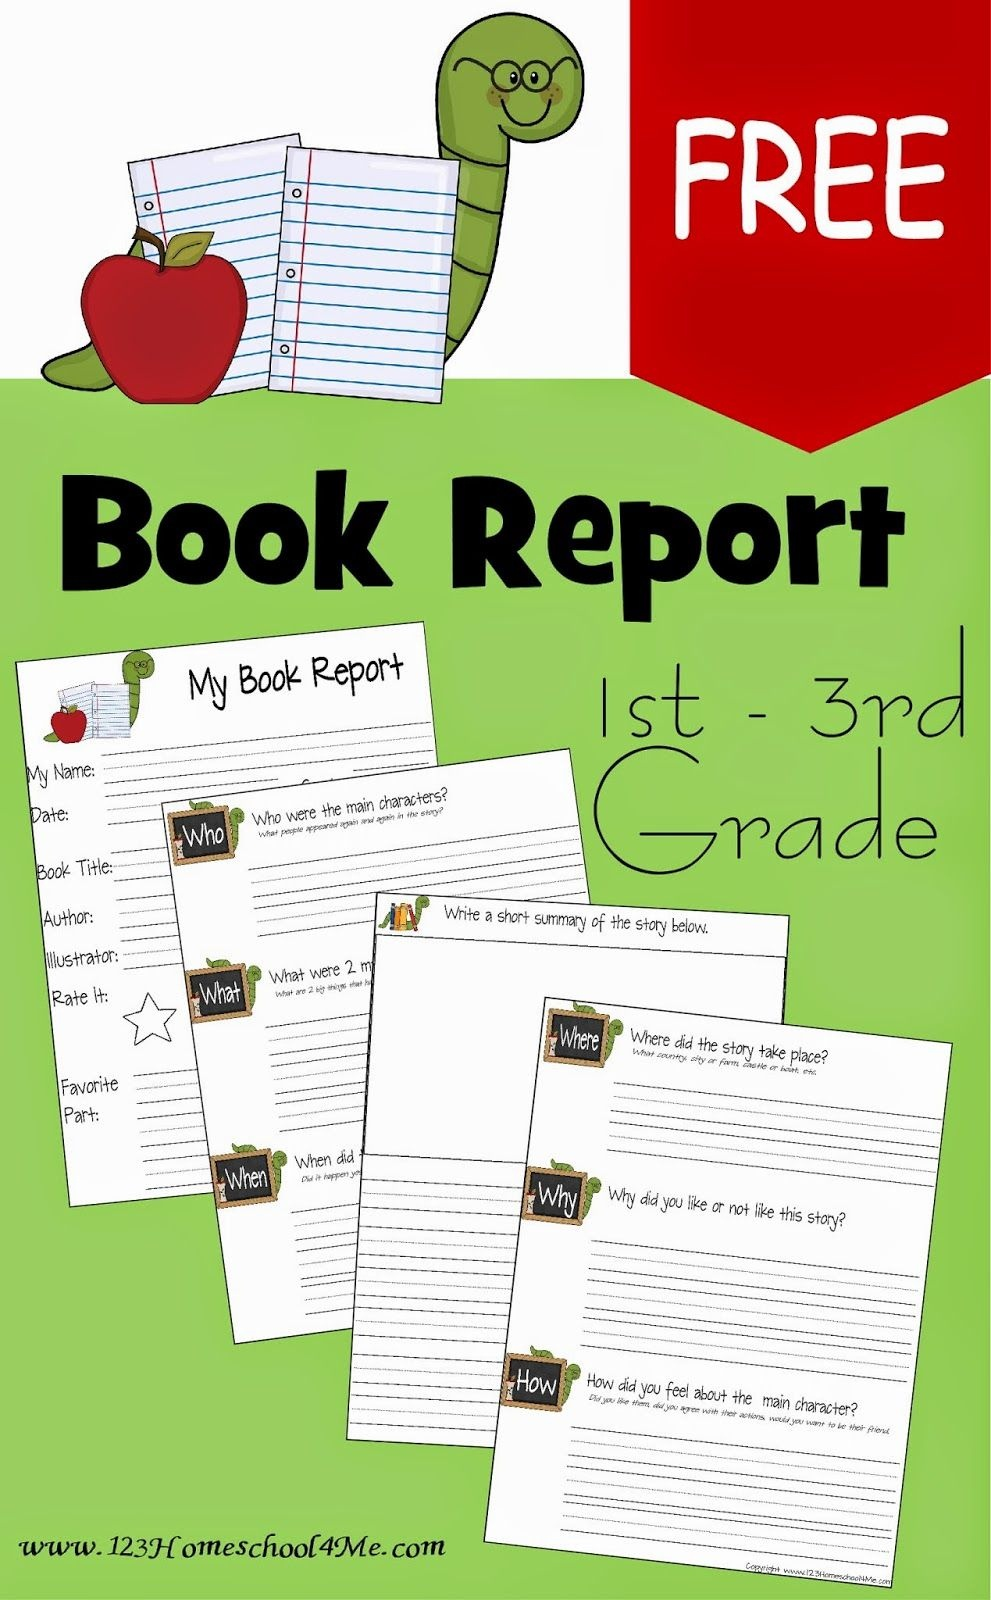 Free Book Report Template | Play Activities For Kids | 1St Grade - Free Printable Book Report Forms For Elementary Students